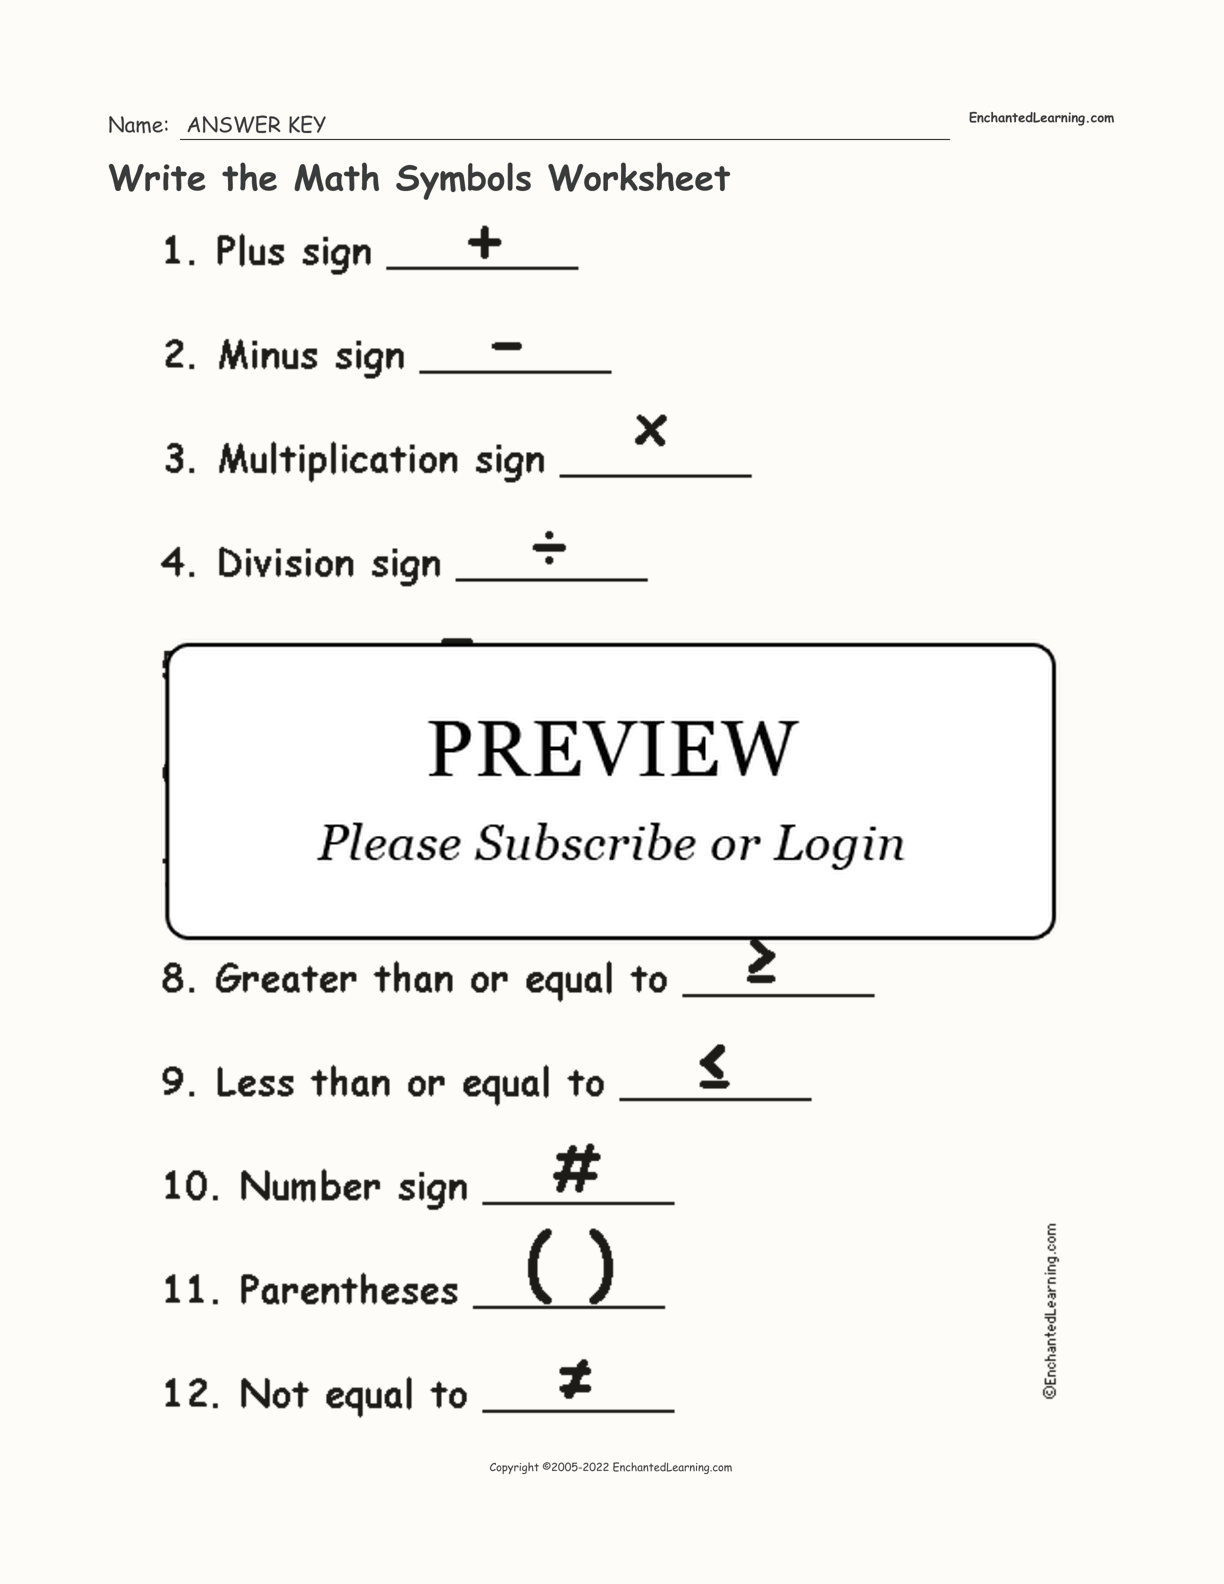 Write The Math Symbols Worksheet